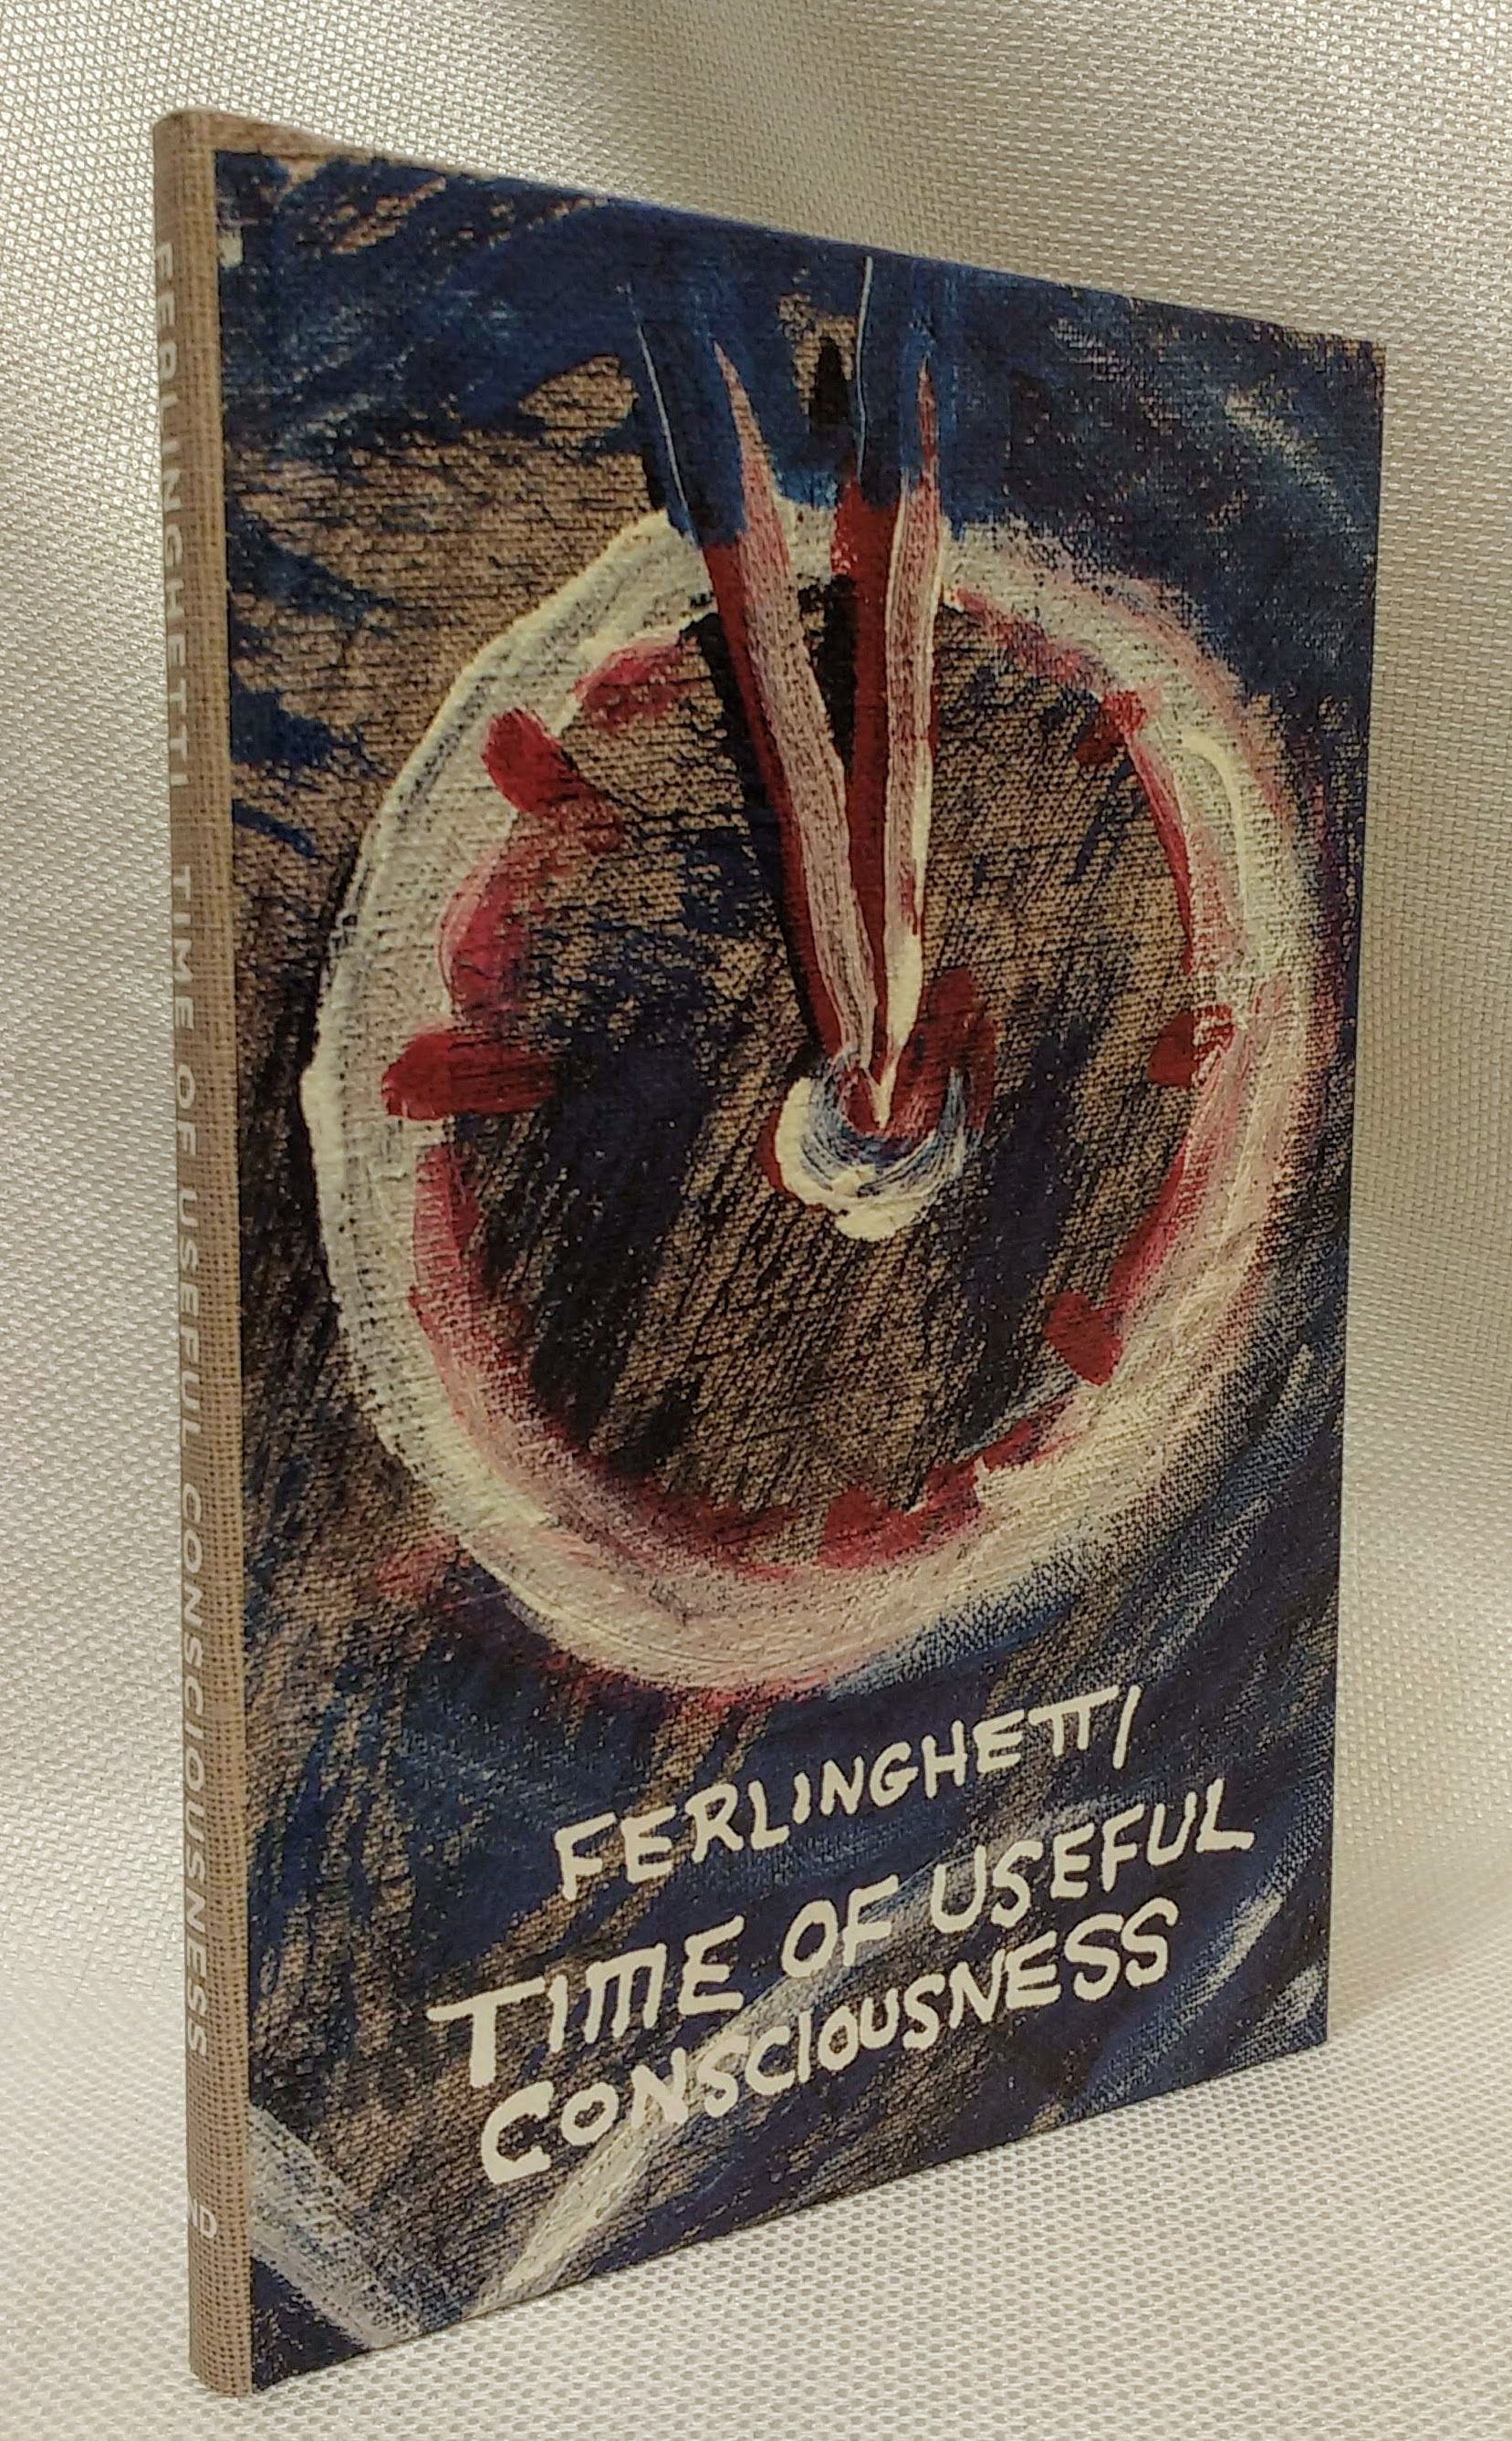 Time of Useful Consciousness (Americus), Ferlinghetti, Lawrence